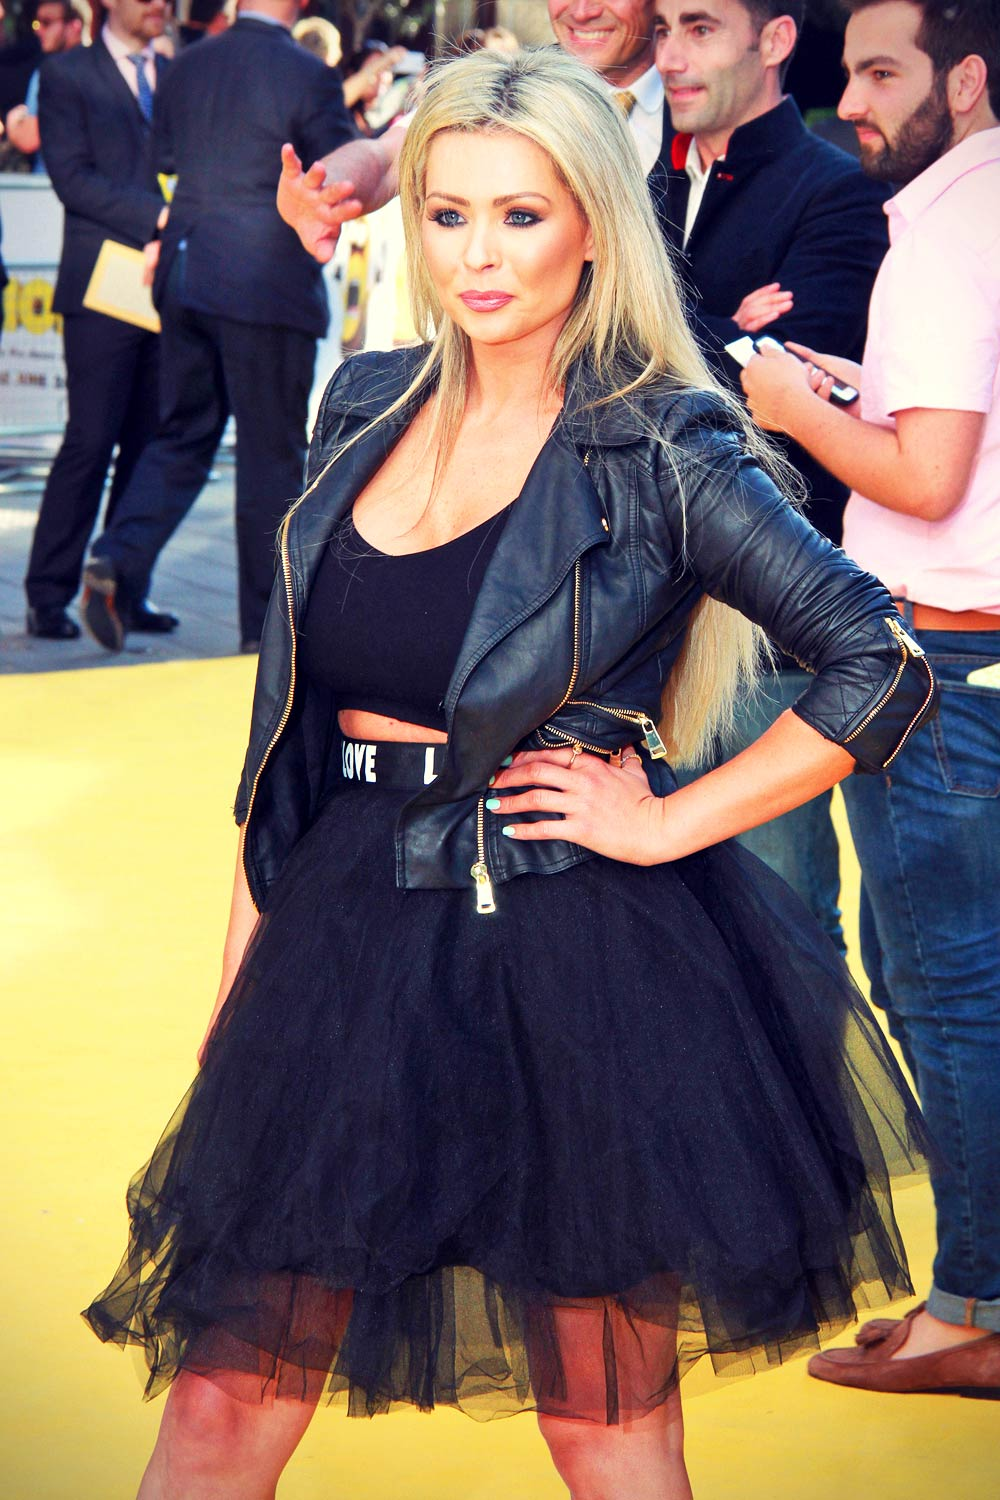 Nicola McLean attends Minions premiere in London